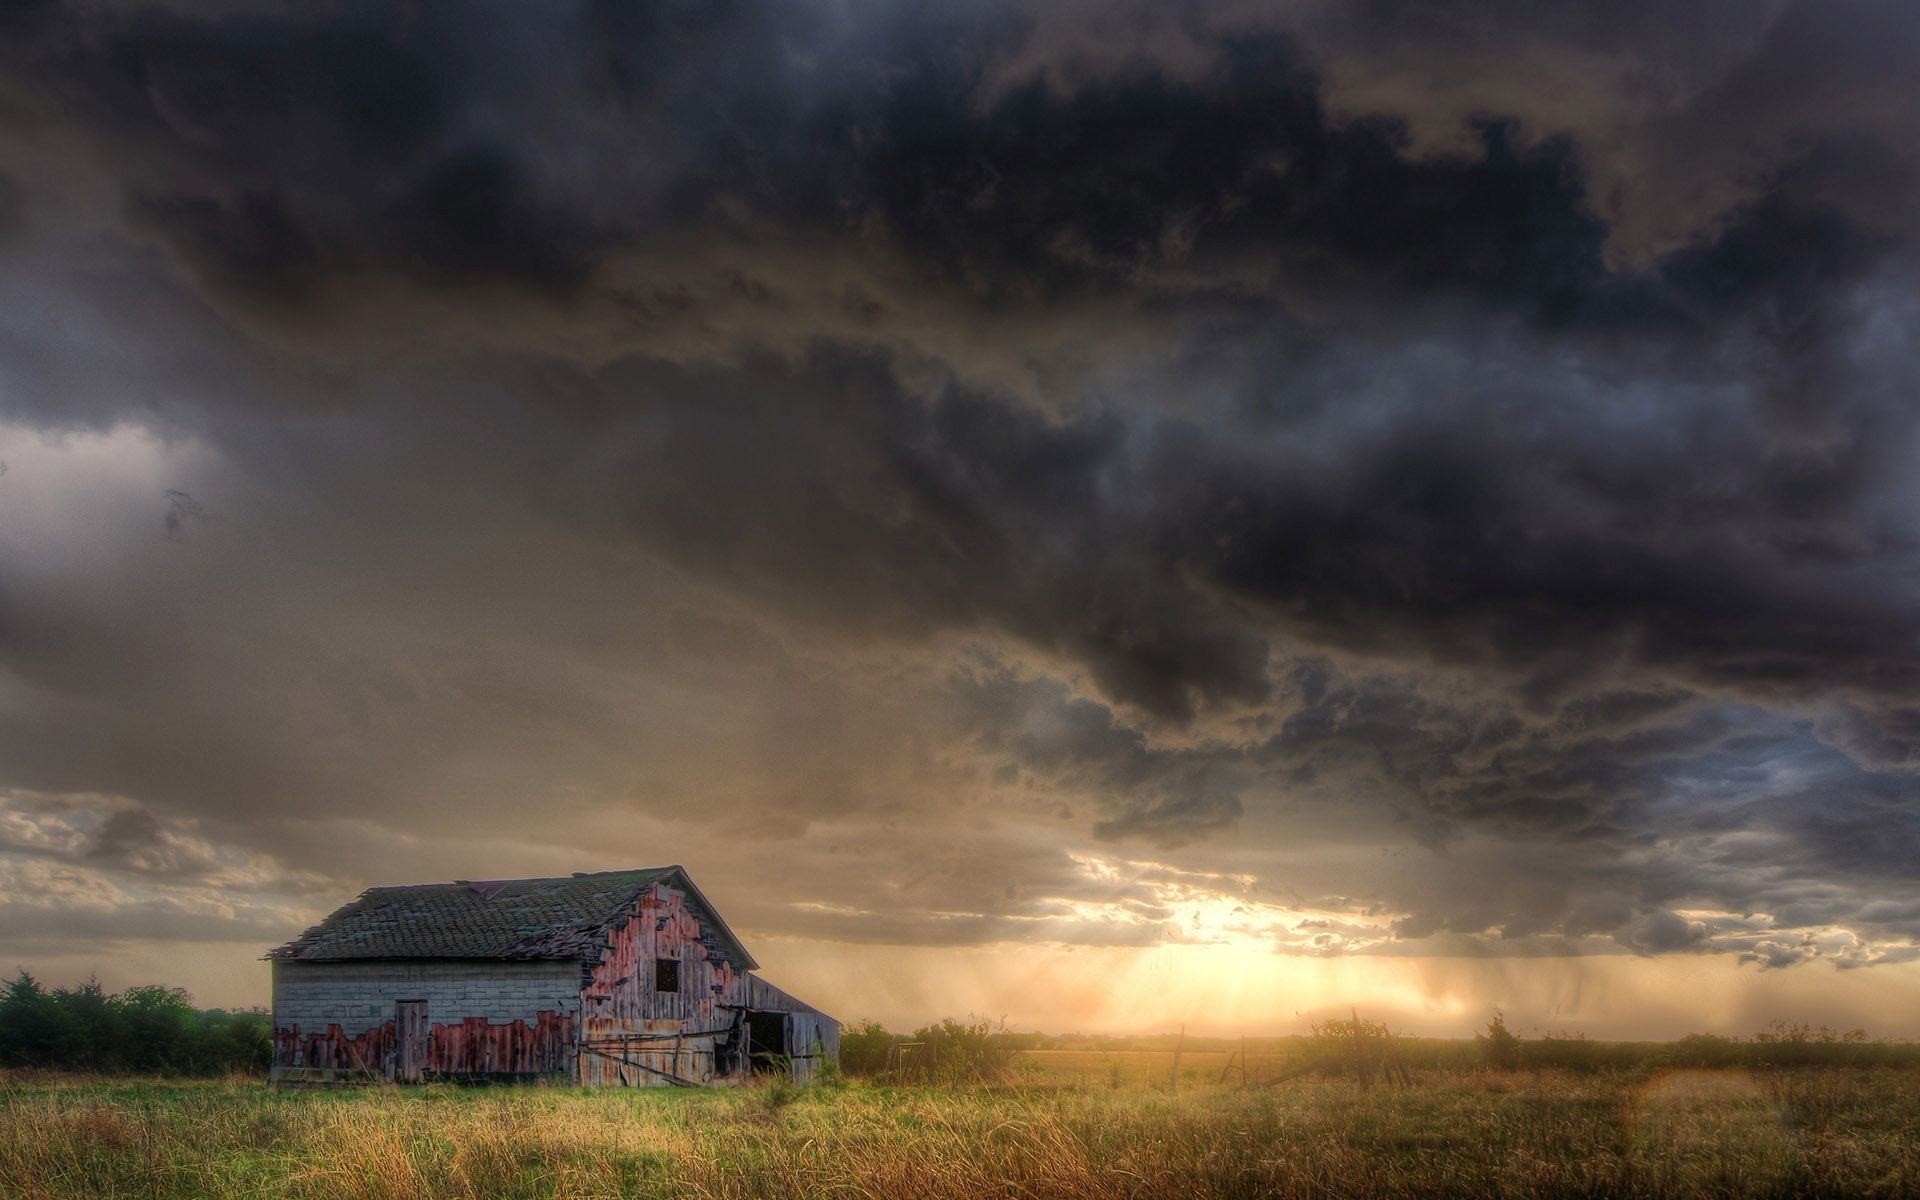 1920x1200 Abandoned cabin under the stormy sky Widescreen Wallpaper .